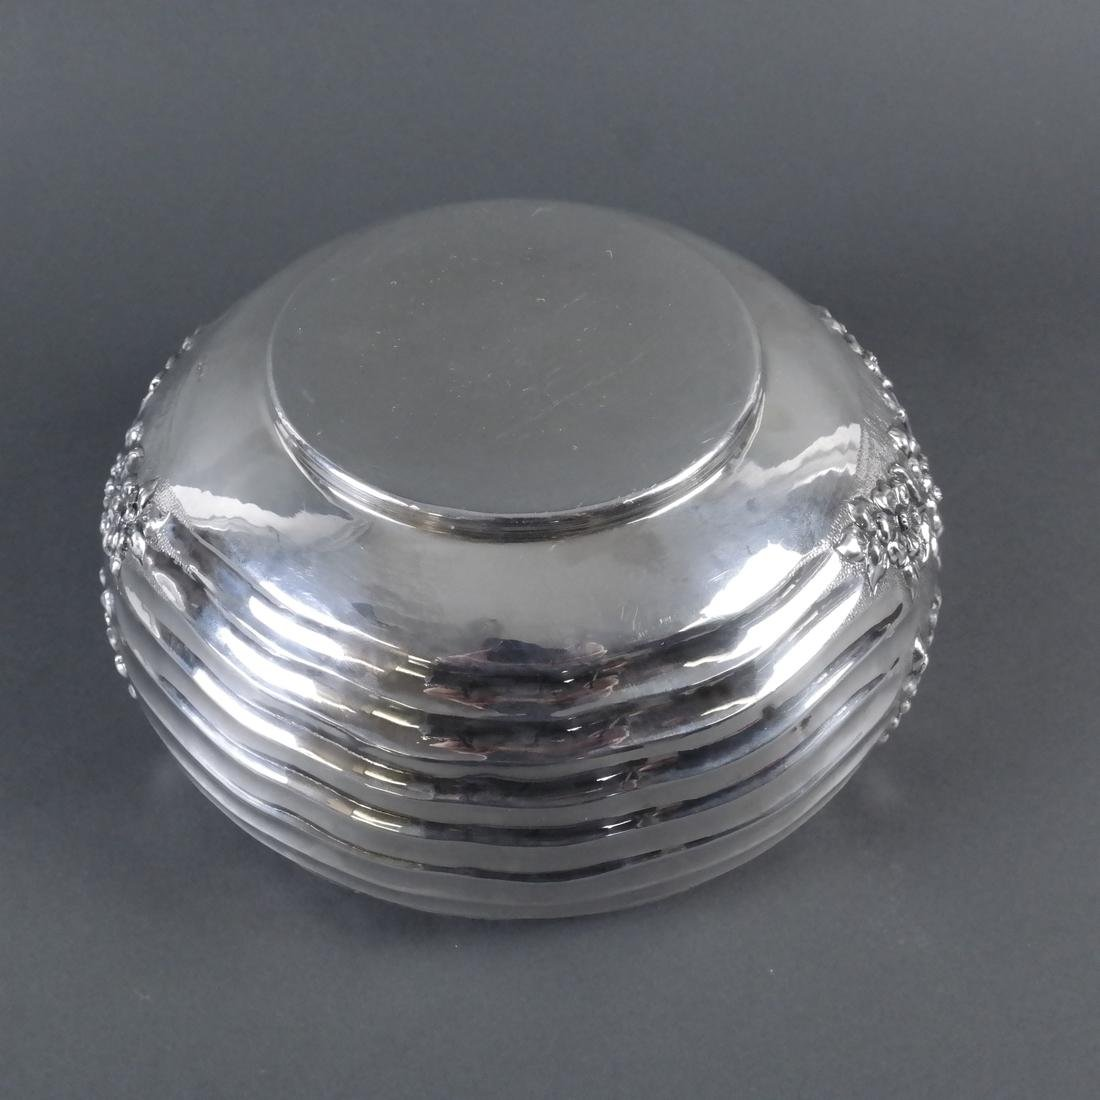 .900 Standard Silver Chased Foliate Bowl - 5